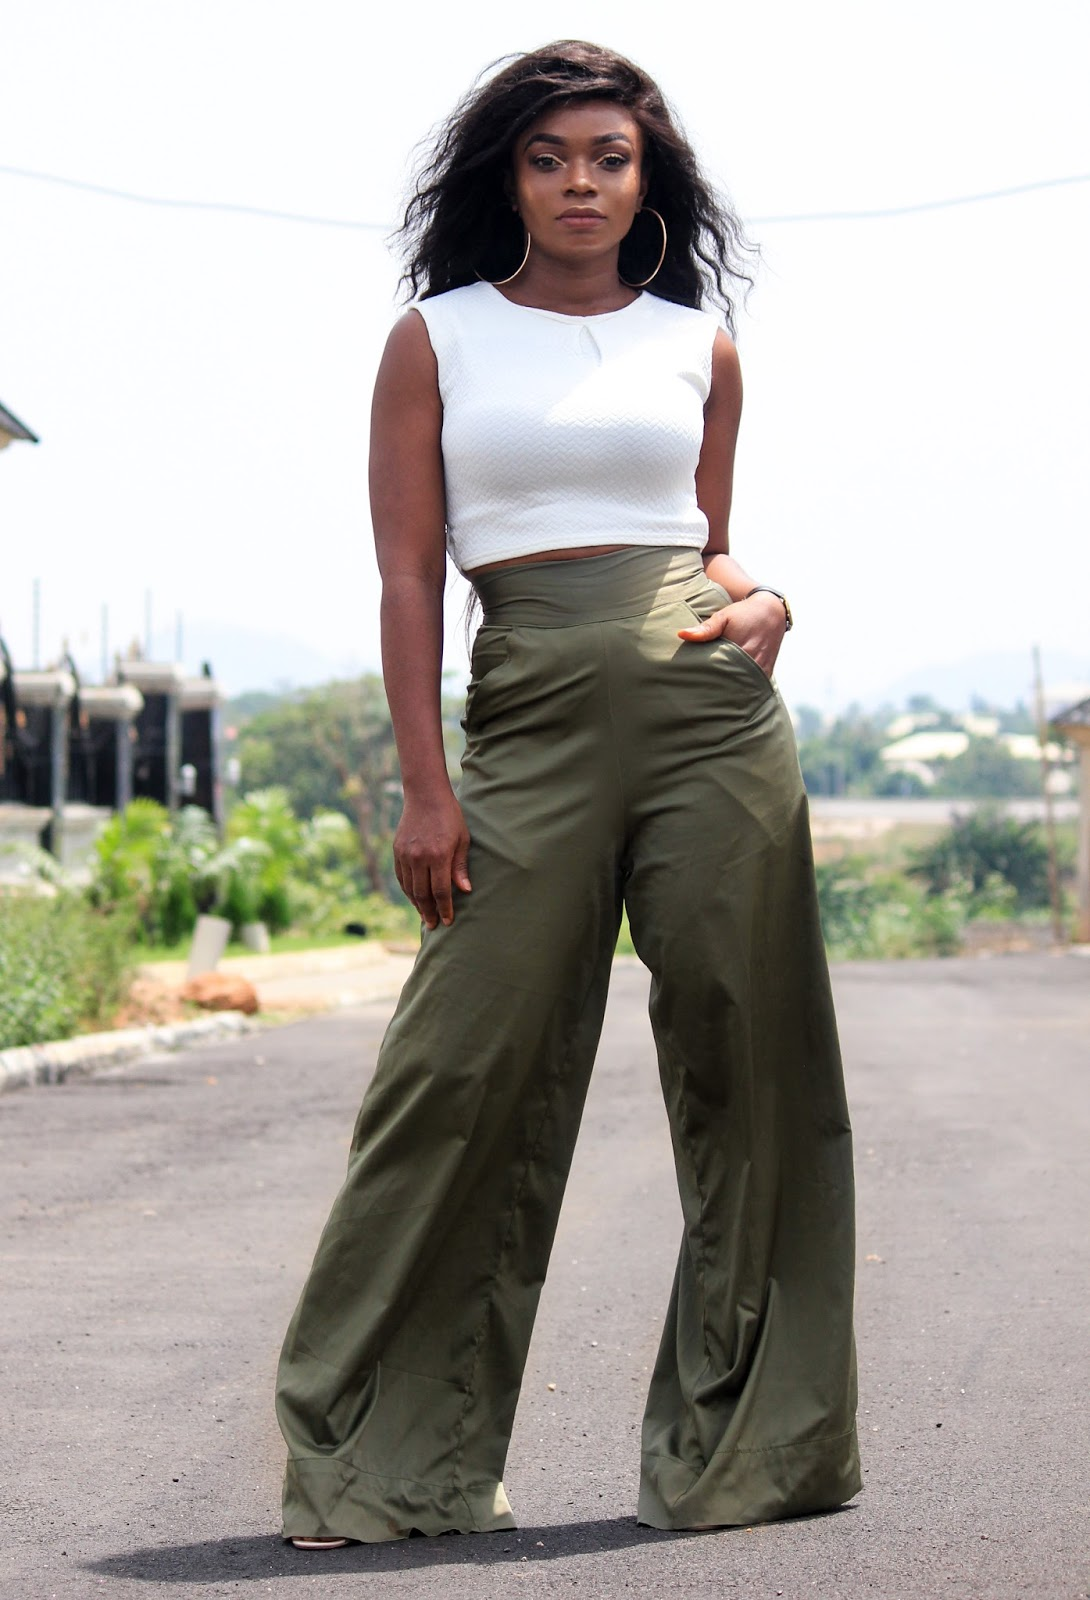 KHAKI PALAZZO PANTS - Khaki Coloured pants from Porshher with white crop top from Boohoo